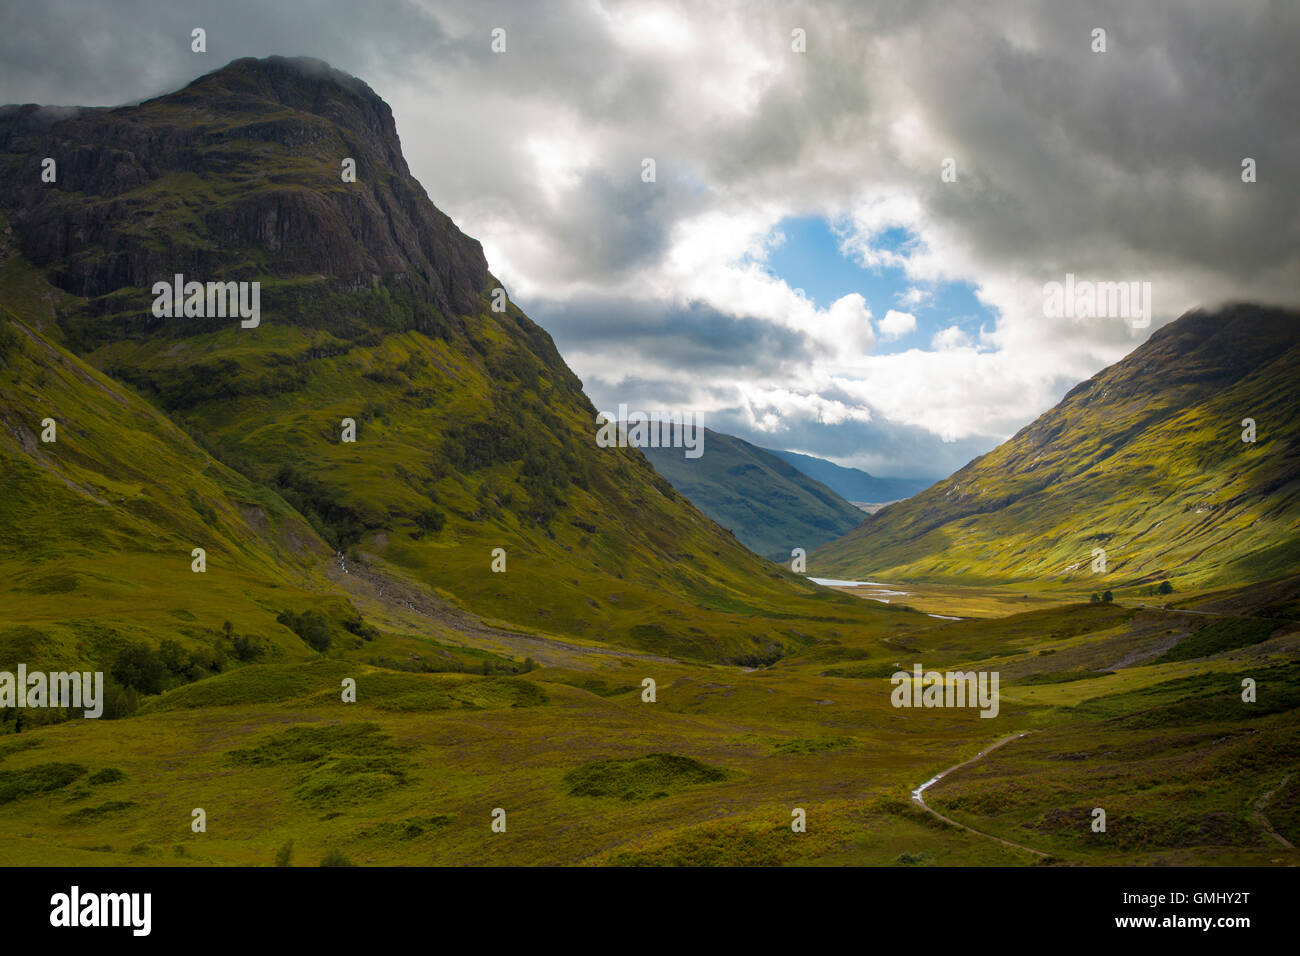 Valley view below the mountains of Glencoe, Lochaber, HIghlands, Scotland - Stock Image